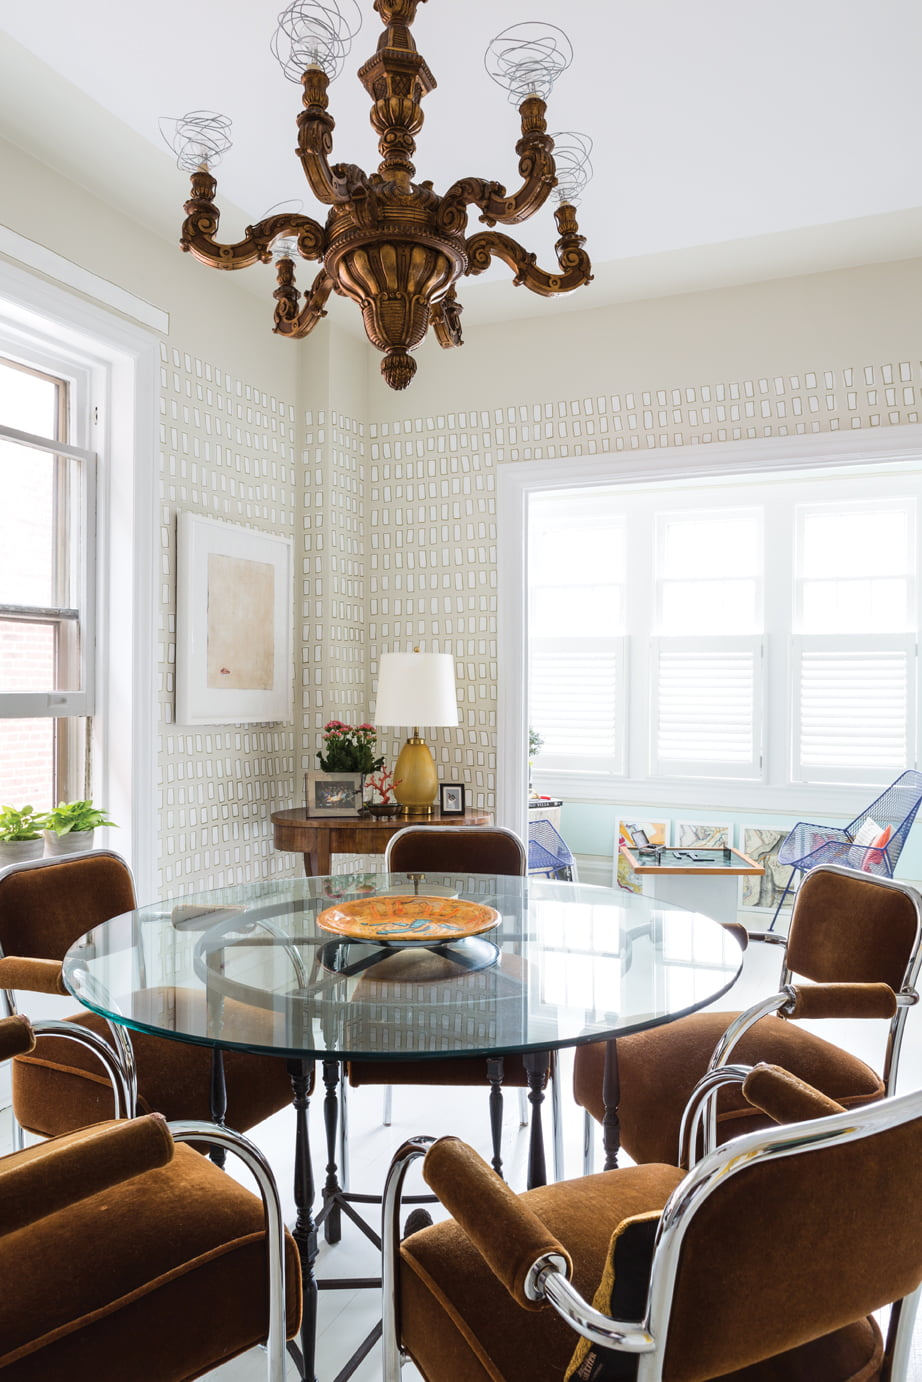 Ireland Created A Freeform Pattern On The Dining Room Walls And In Lieu Of Shades